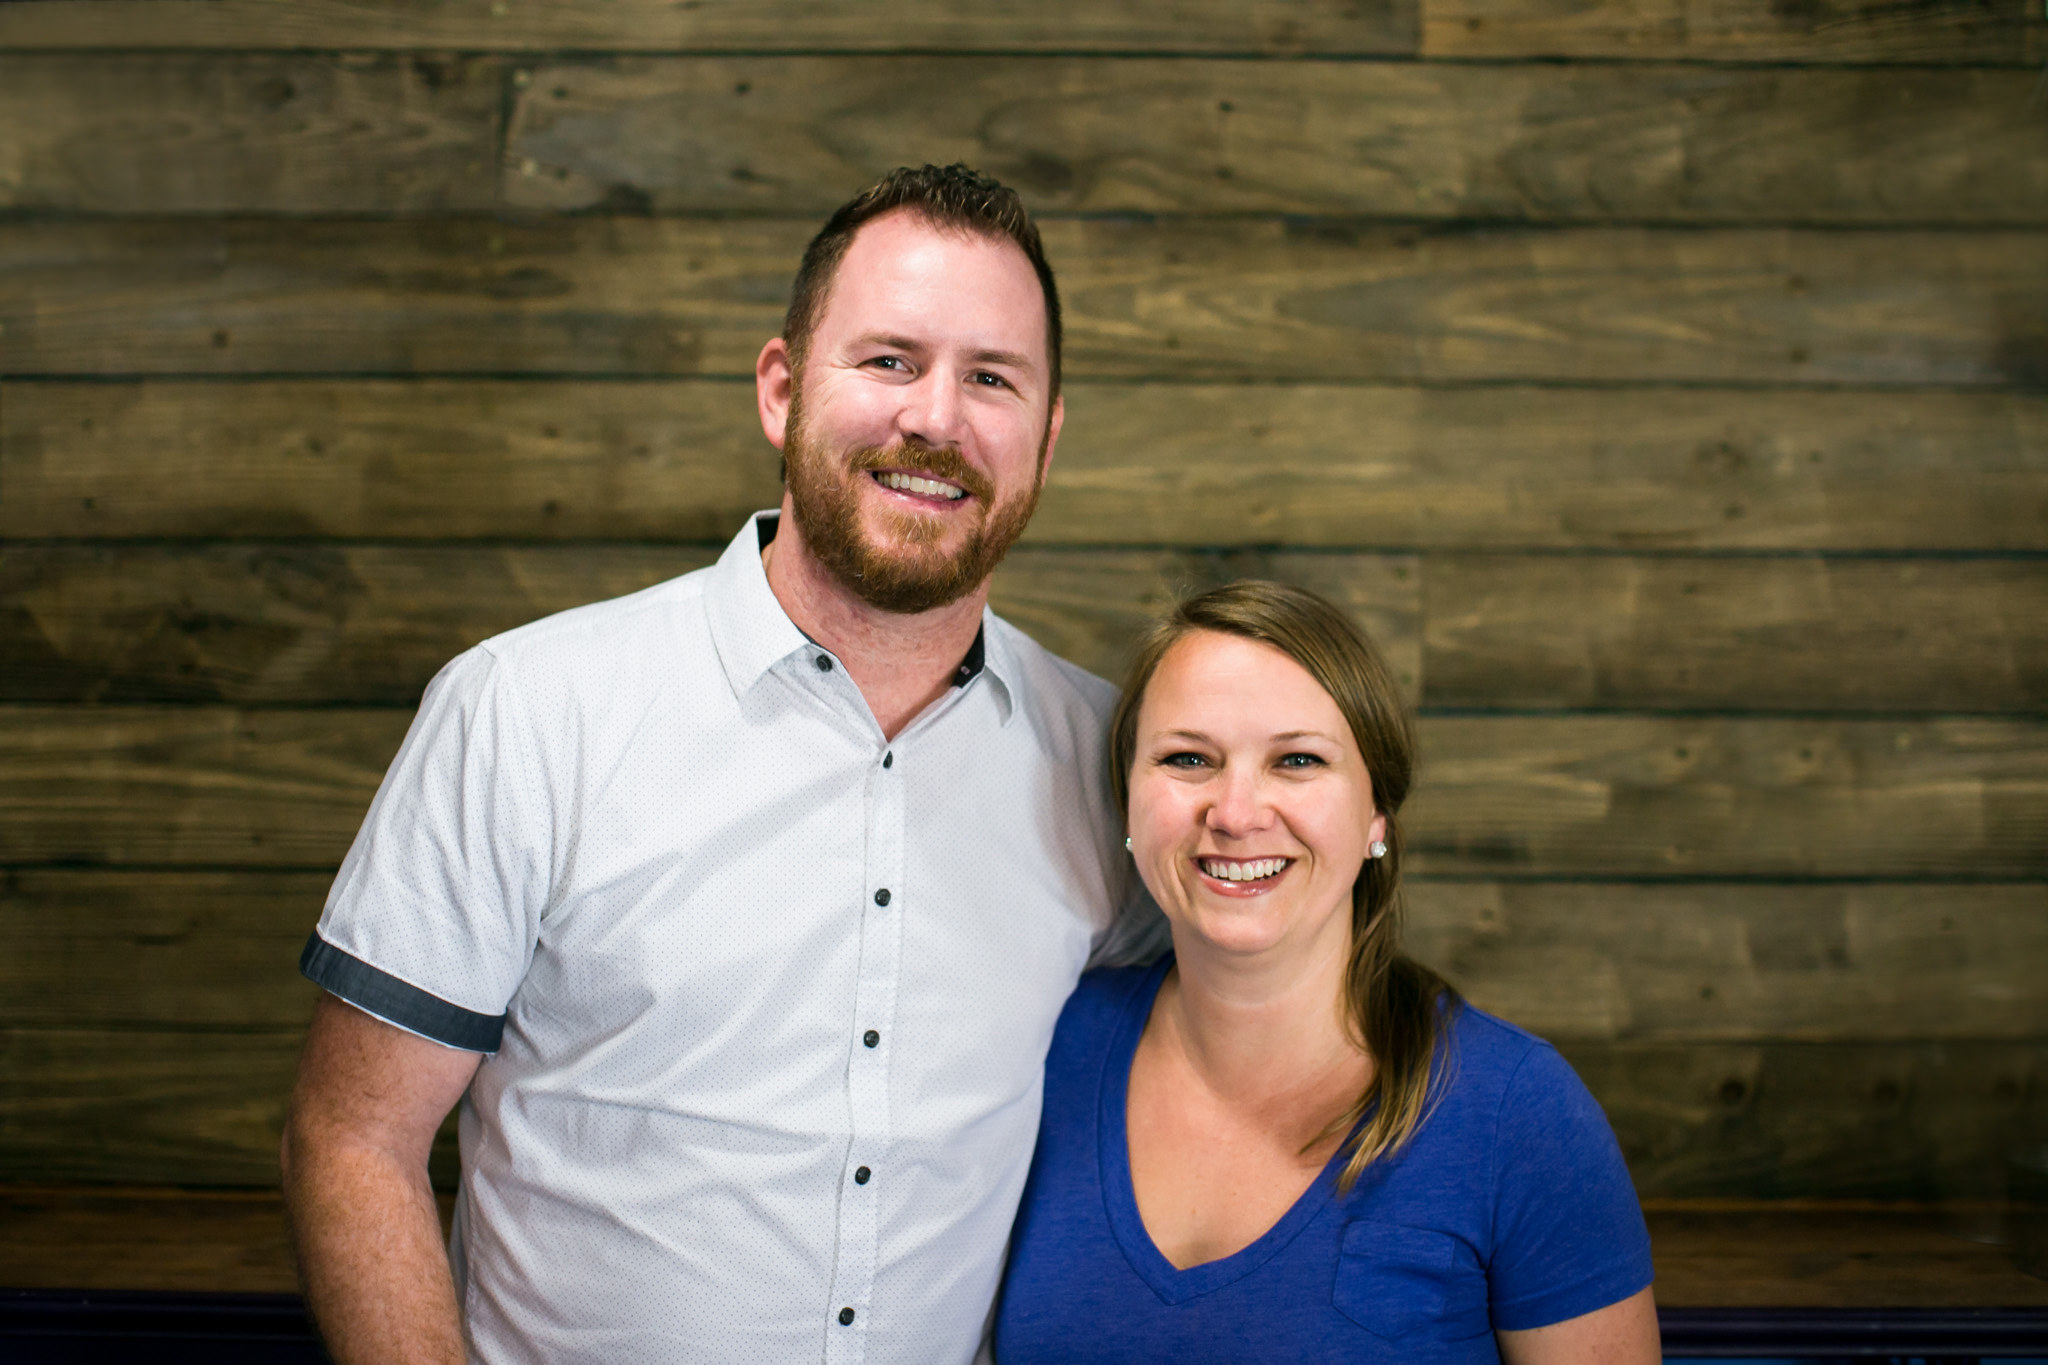 Message from our pastors...   Hello and welcome to storychurch.org! We are so excited that you would take a couple of minutes to check us out here online. We started  STORY CHURCH back in 2010 because we wanted to create a community that would help people embrace the story they were meant to live. We believe God's love for you is so great that there is a unique role prepared for you in the story God is telling. Every single week we pray that people like you would find a place to BELONG at  STORY CHURCH. Whether this is the first church you'll experience, or maybe just the first in a long time - our hope and prayer is that you truly feel at home here. You don't have to believe like us to belong with us. We hope that over time we can earn your trust, share our hearts and lives with you, and share what we have found to be the greatest source of life there is - a relationship with Jesus.  If you still aren't sure, don't hesitate to reach out with questions or to watch a few services online before you visit. But please come give it a try. We can't wait to meet you.   Lead Pastors Jeremy and Kimi Copeland